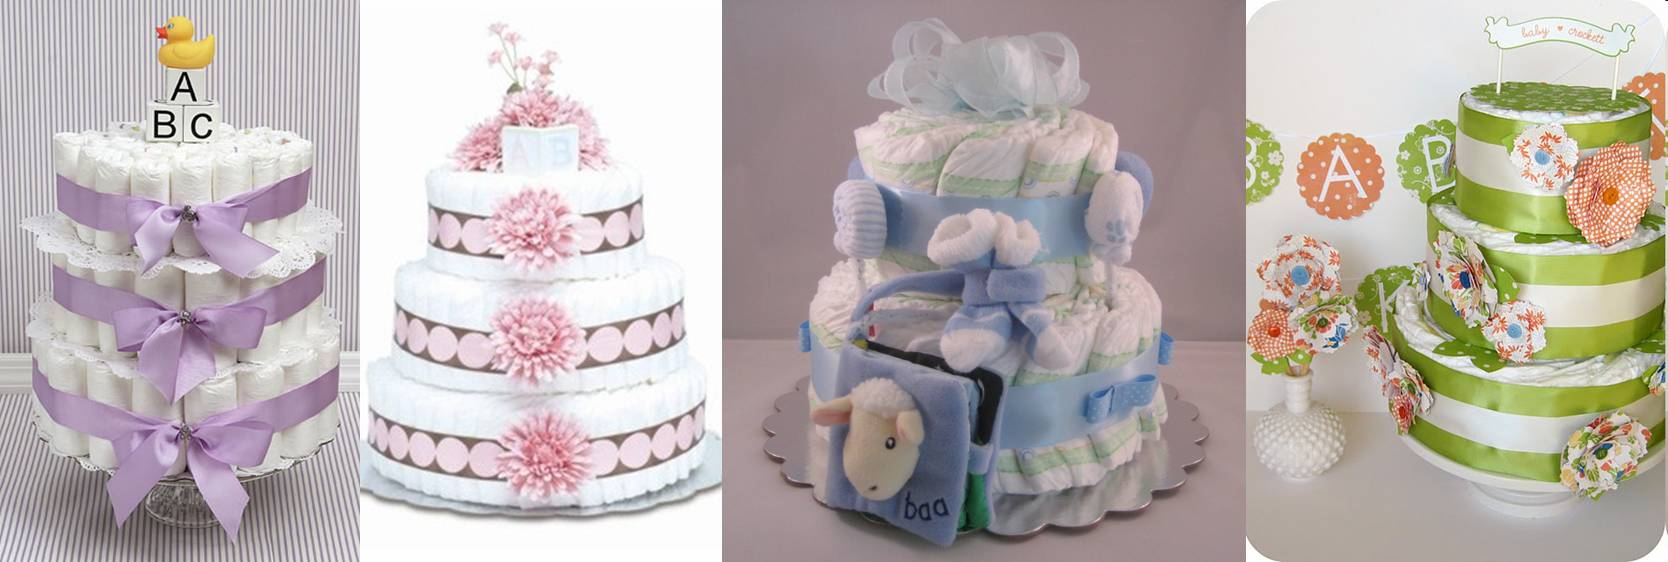 R aliser faire g teau de couches ma baby shower party - Fabrication d un gateau de couches ...